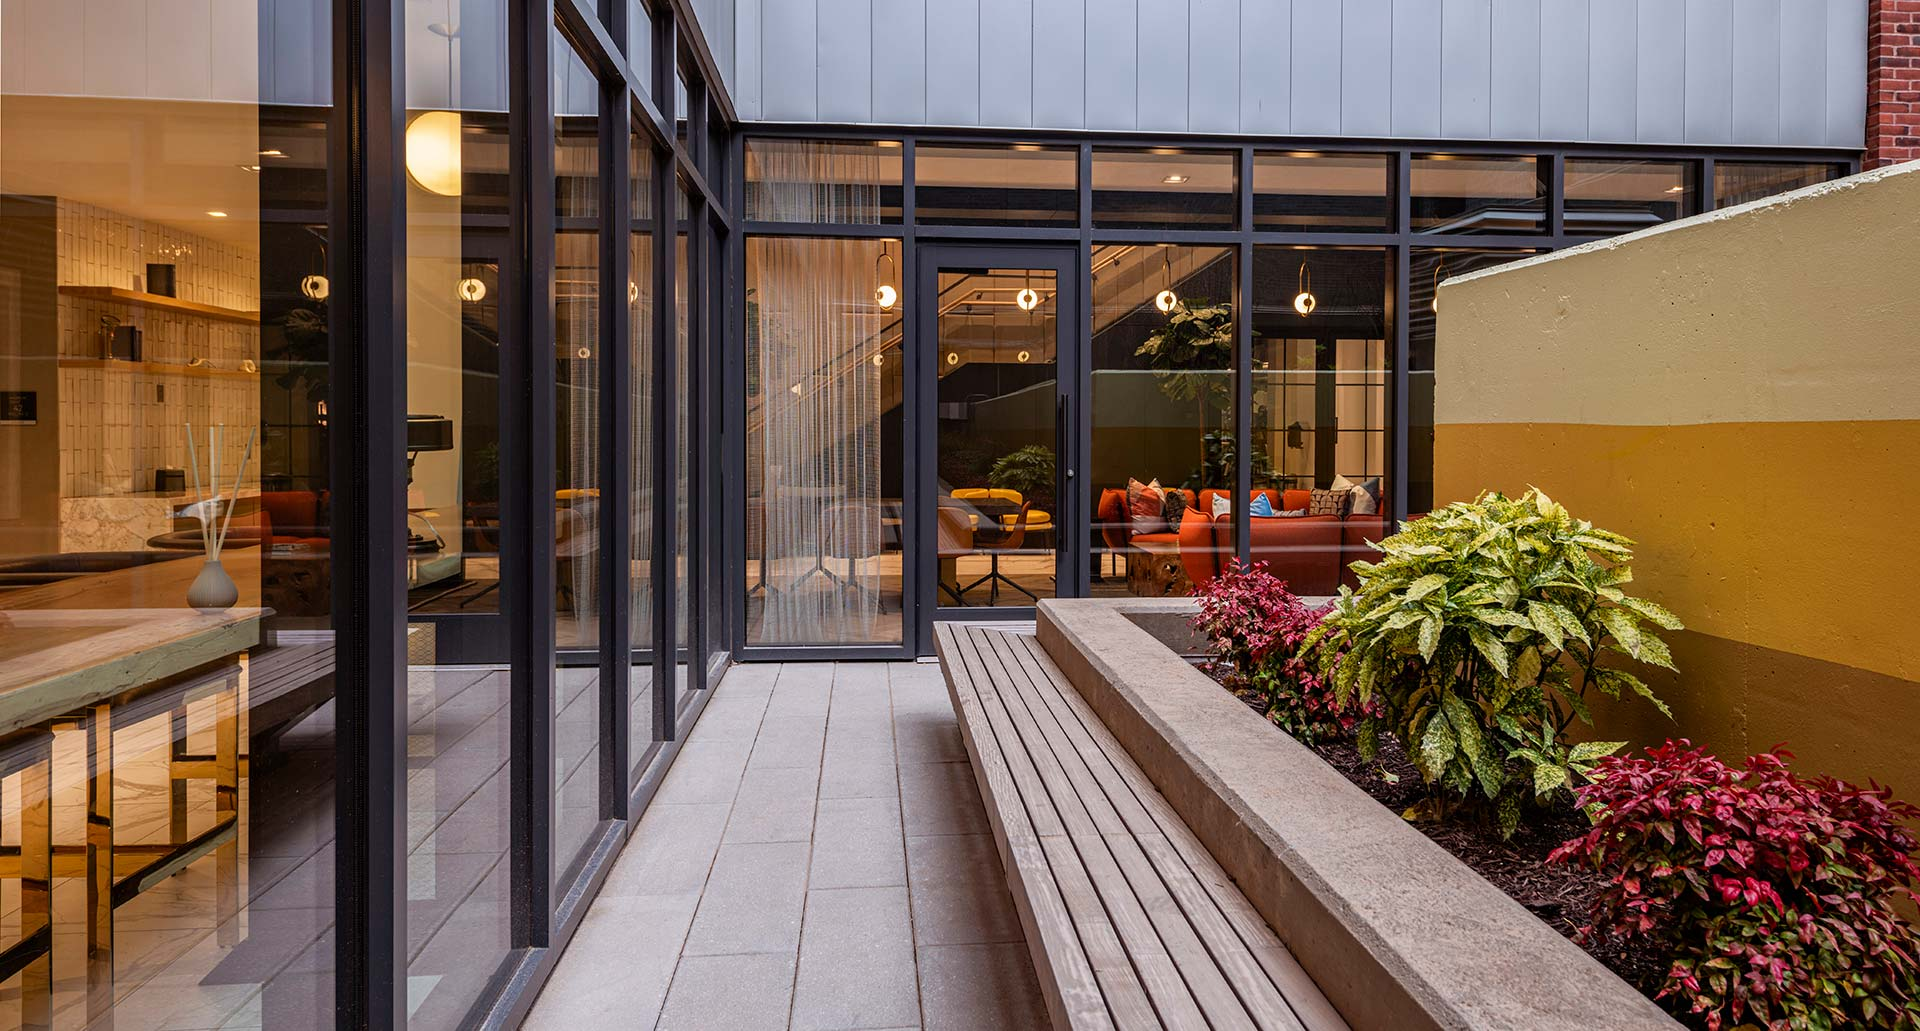 interior courtyard with bench seating and plants